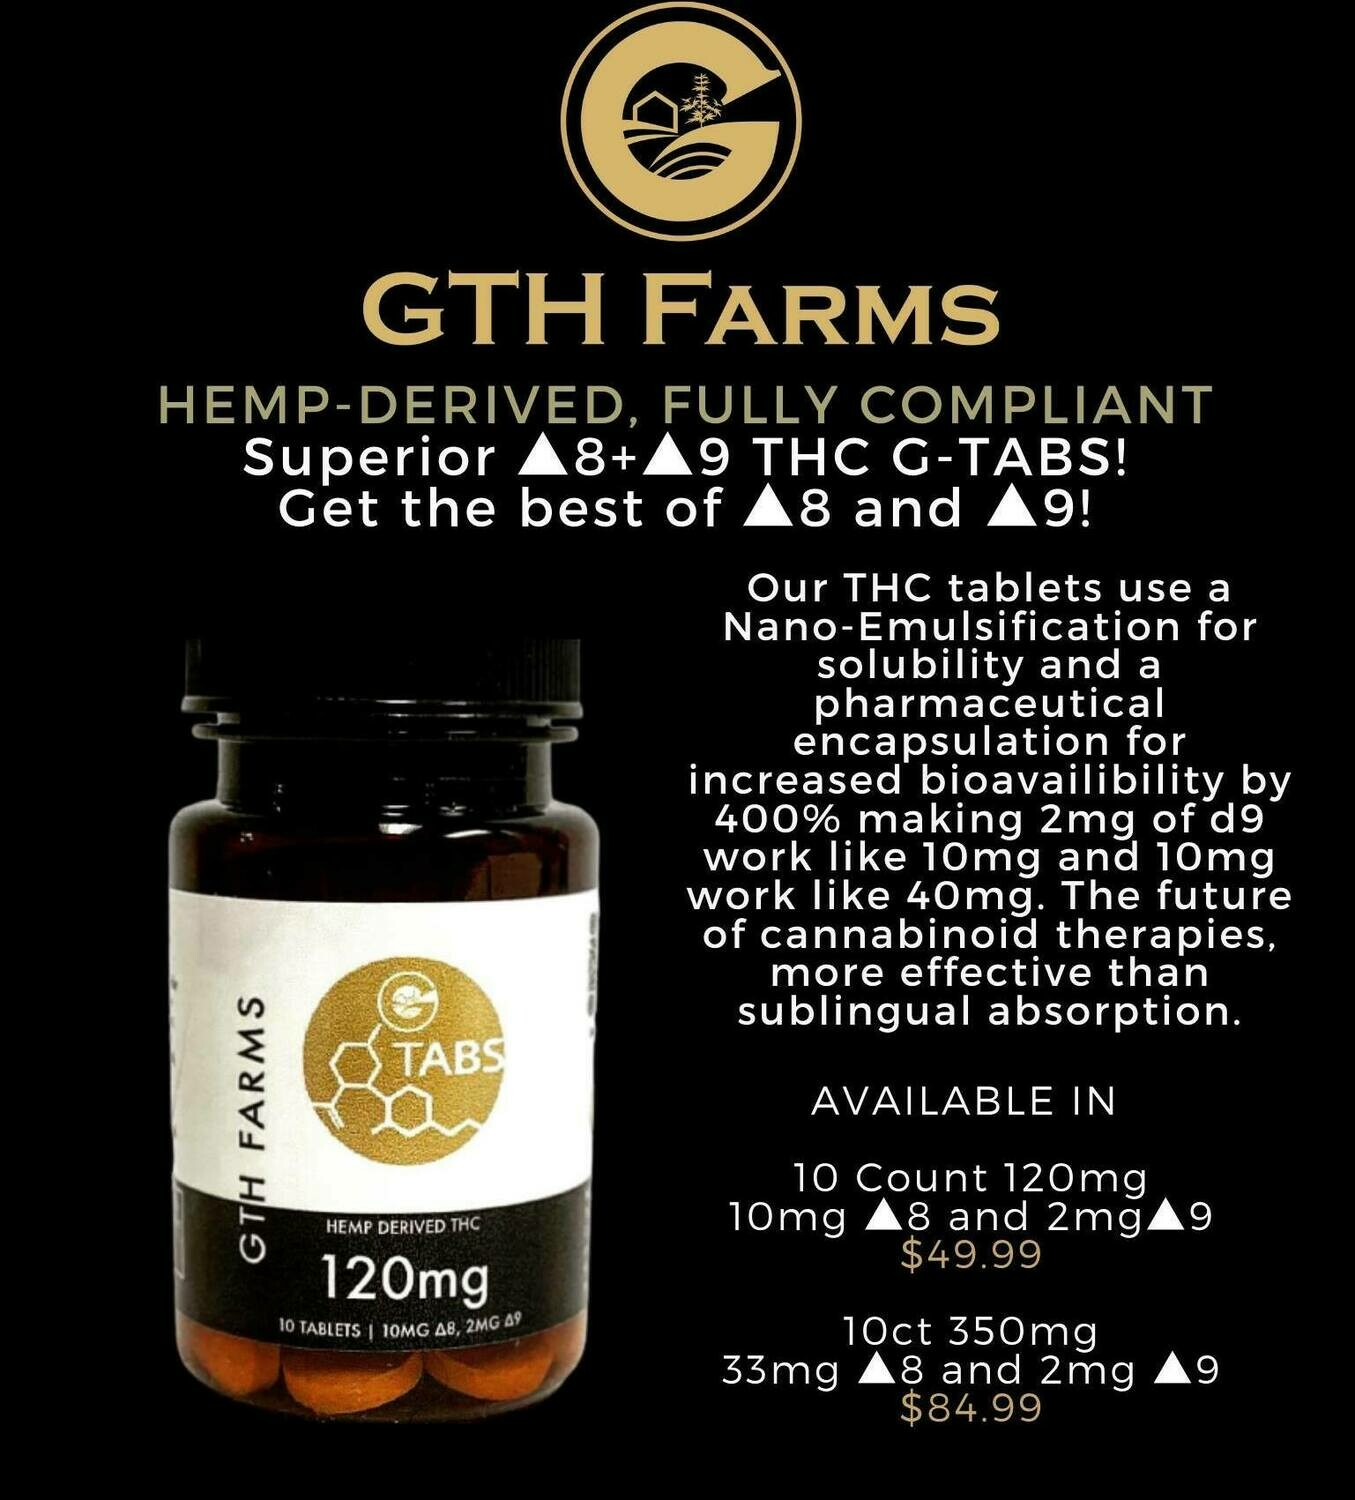 Hemp-Derived ▲8:▲9 Water Soluble G-Tabs